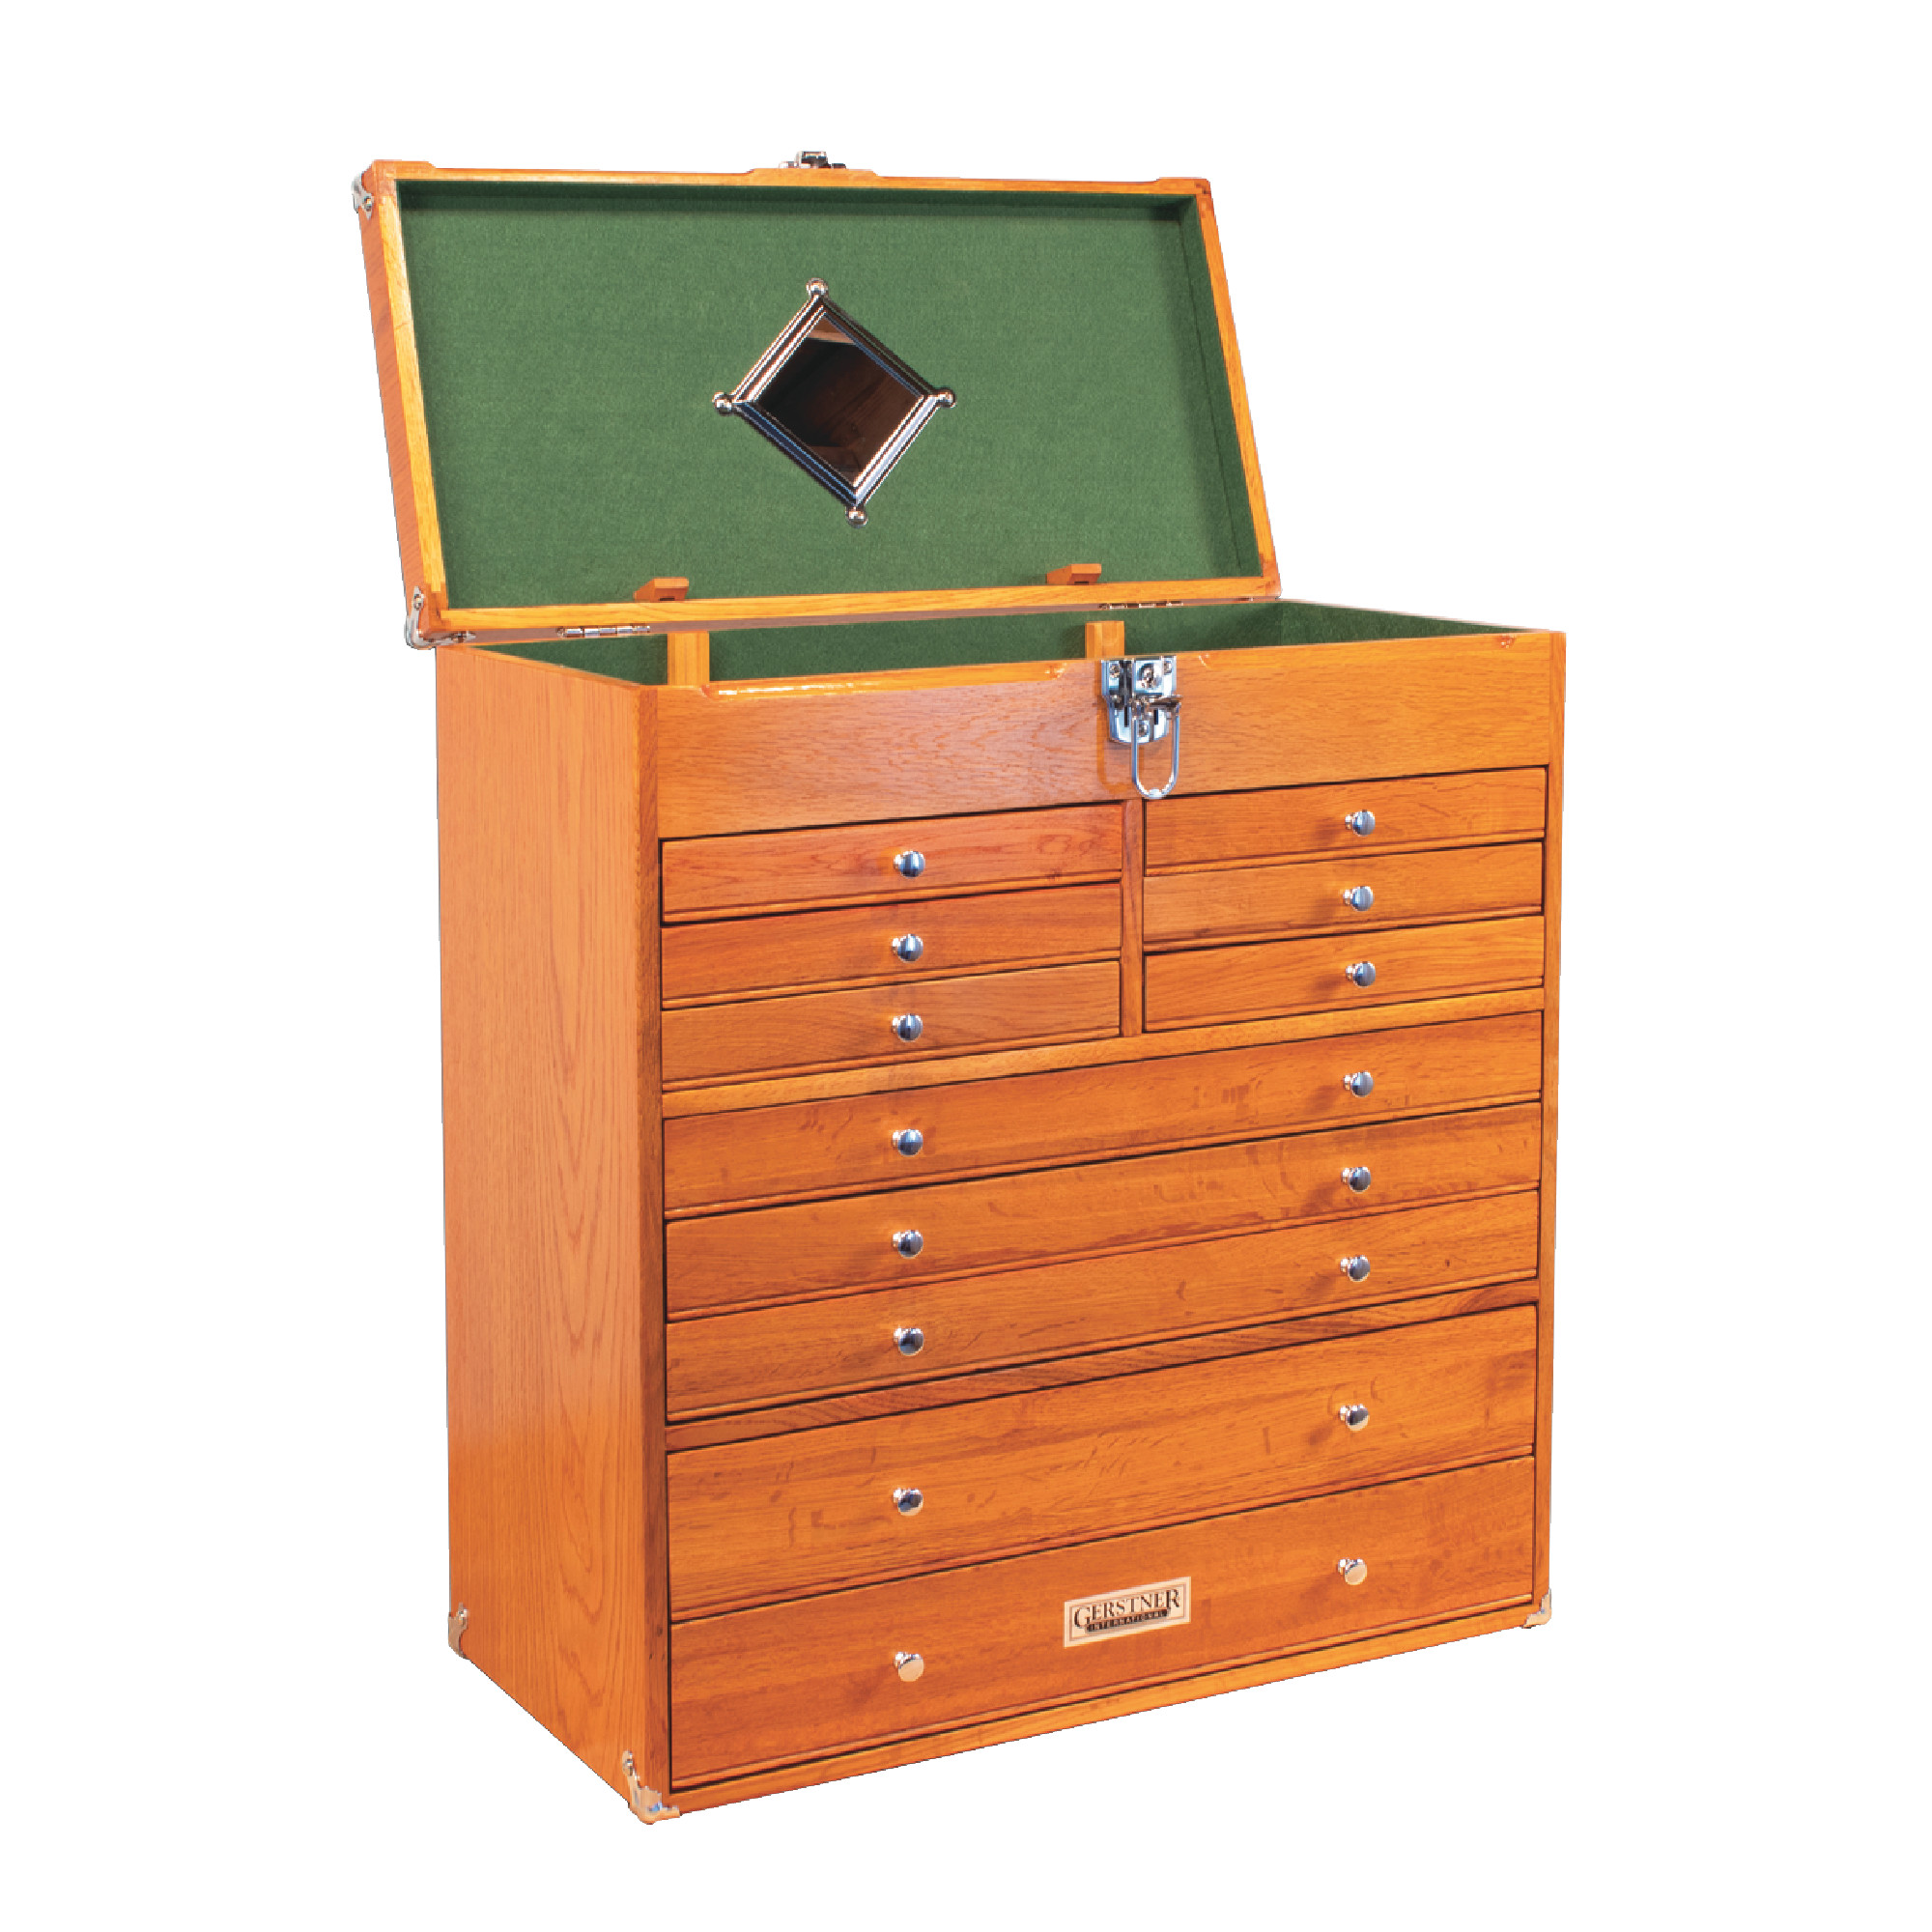 11-Drawer Top Chest with All-Lock Drawer System